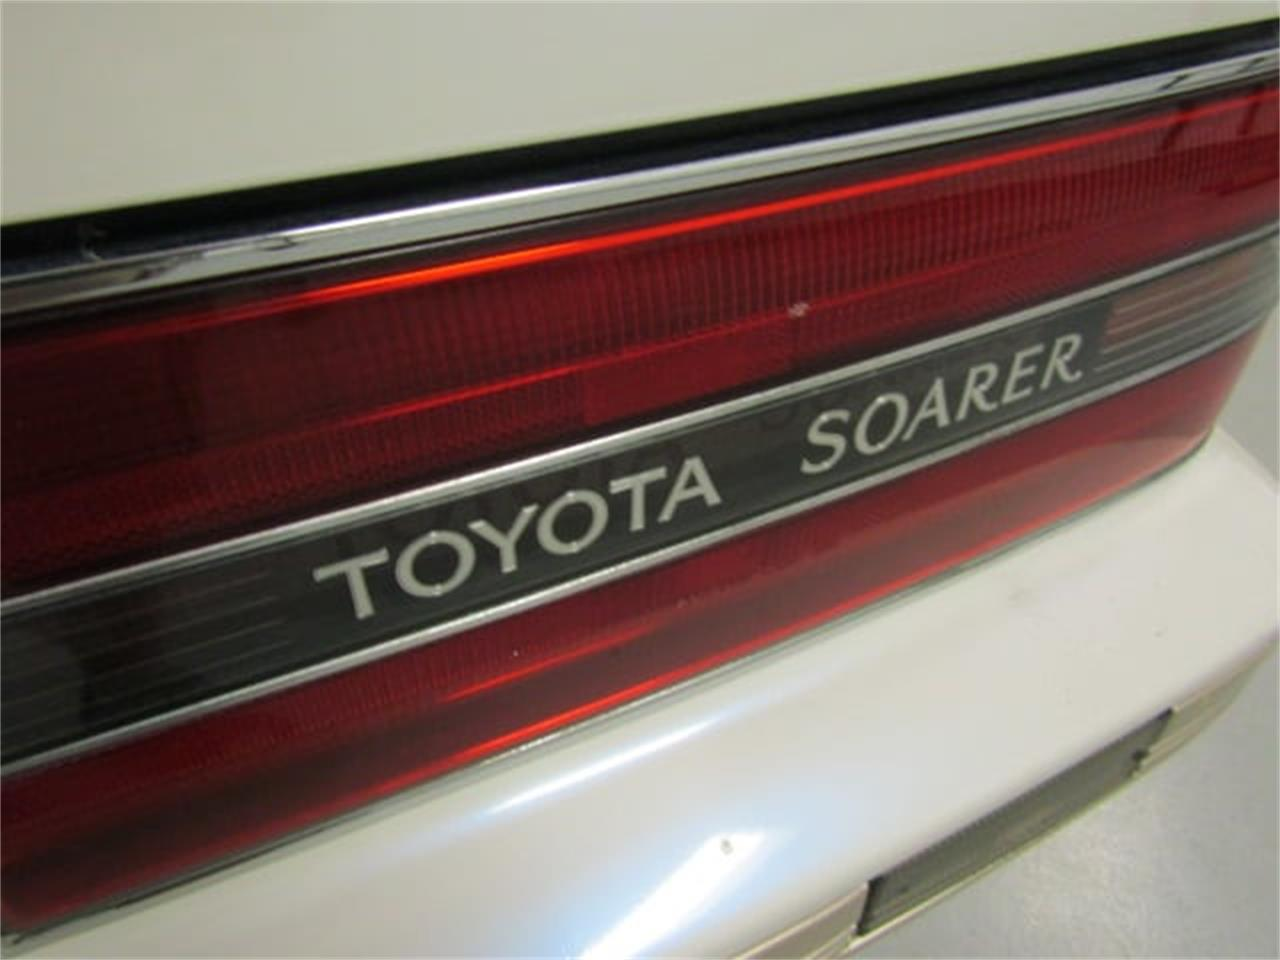 Large Picture of '89 Soarer located in Christiansburg Virginia - $12,900.00 - LN7J